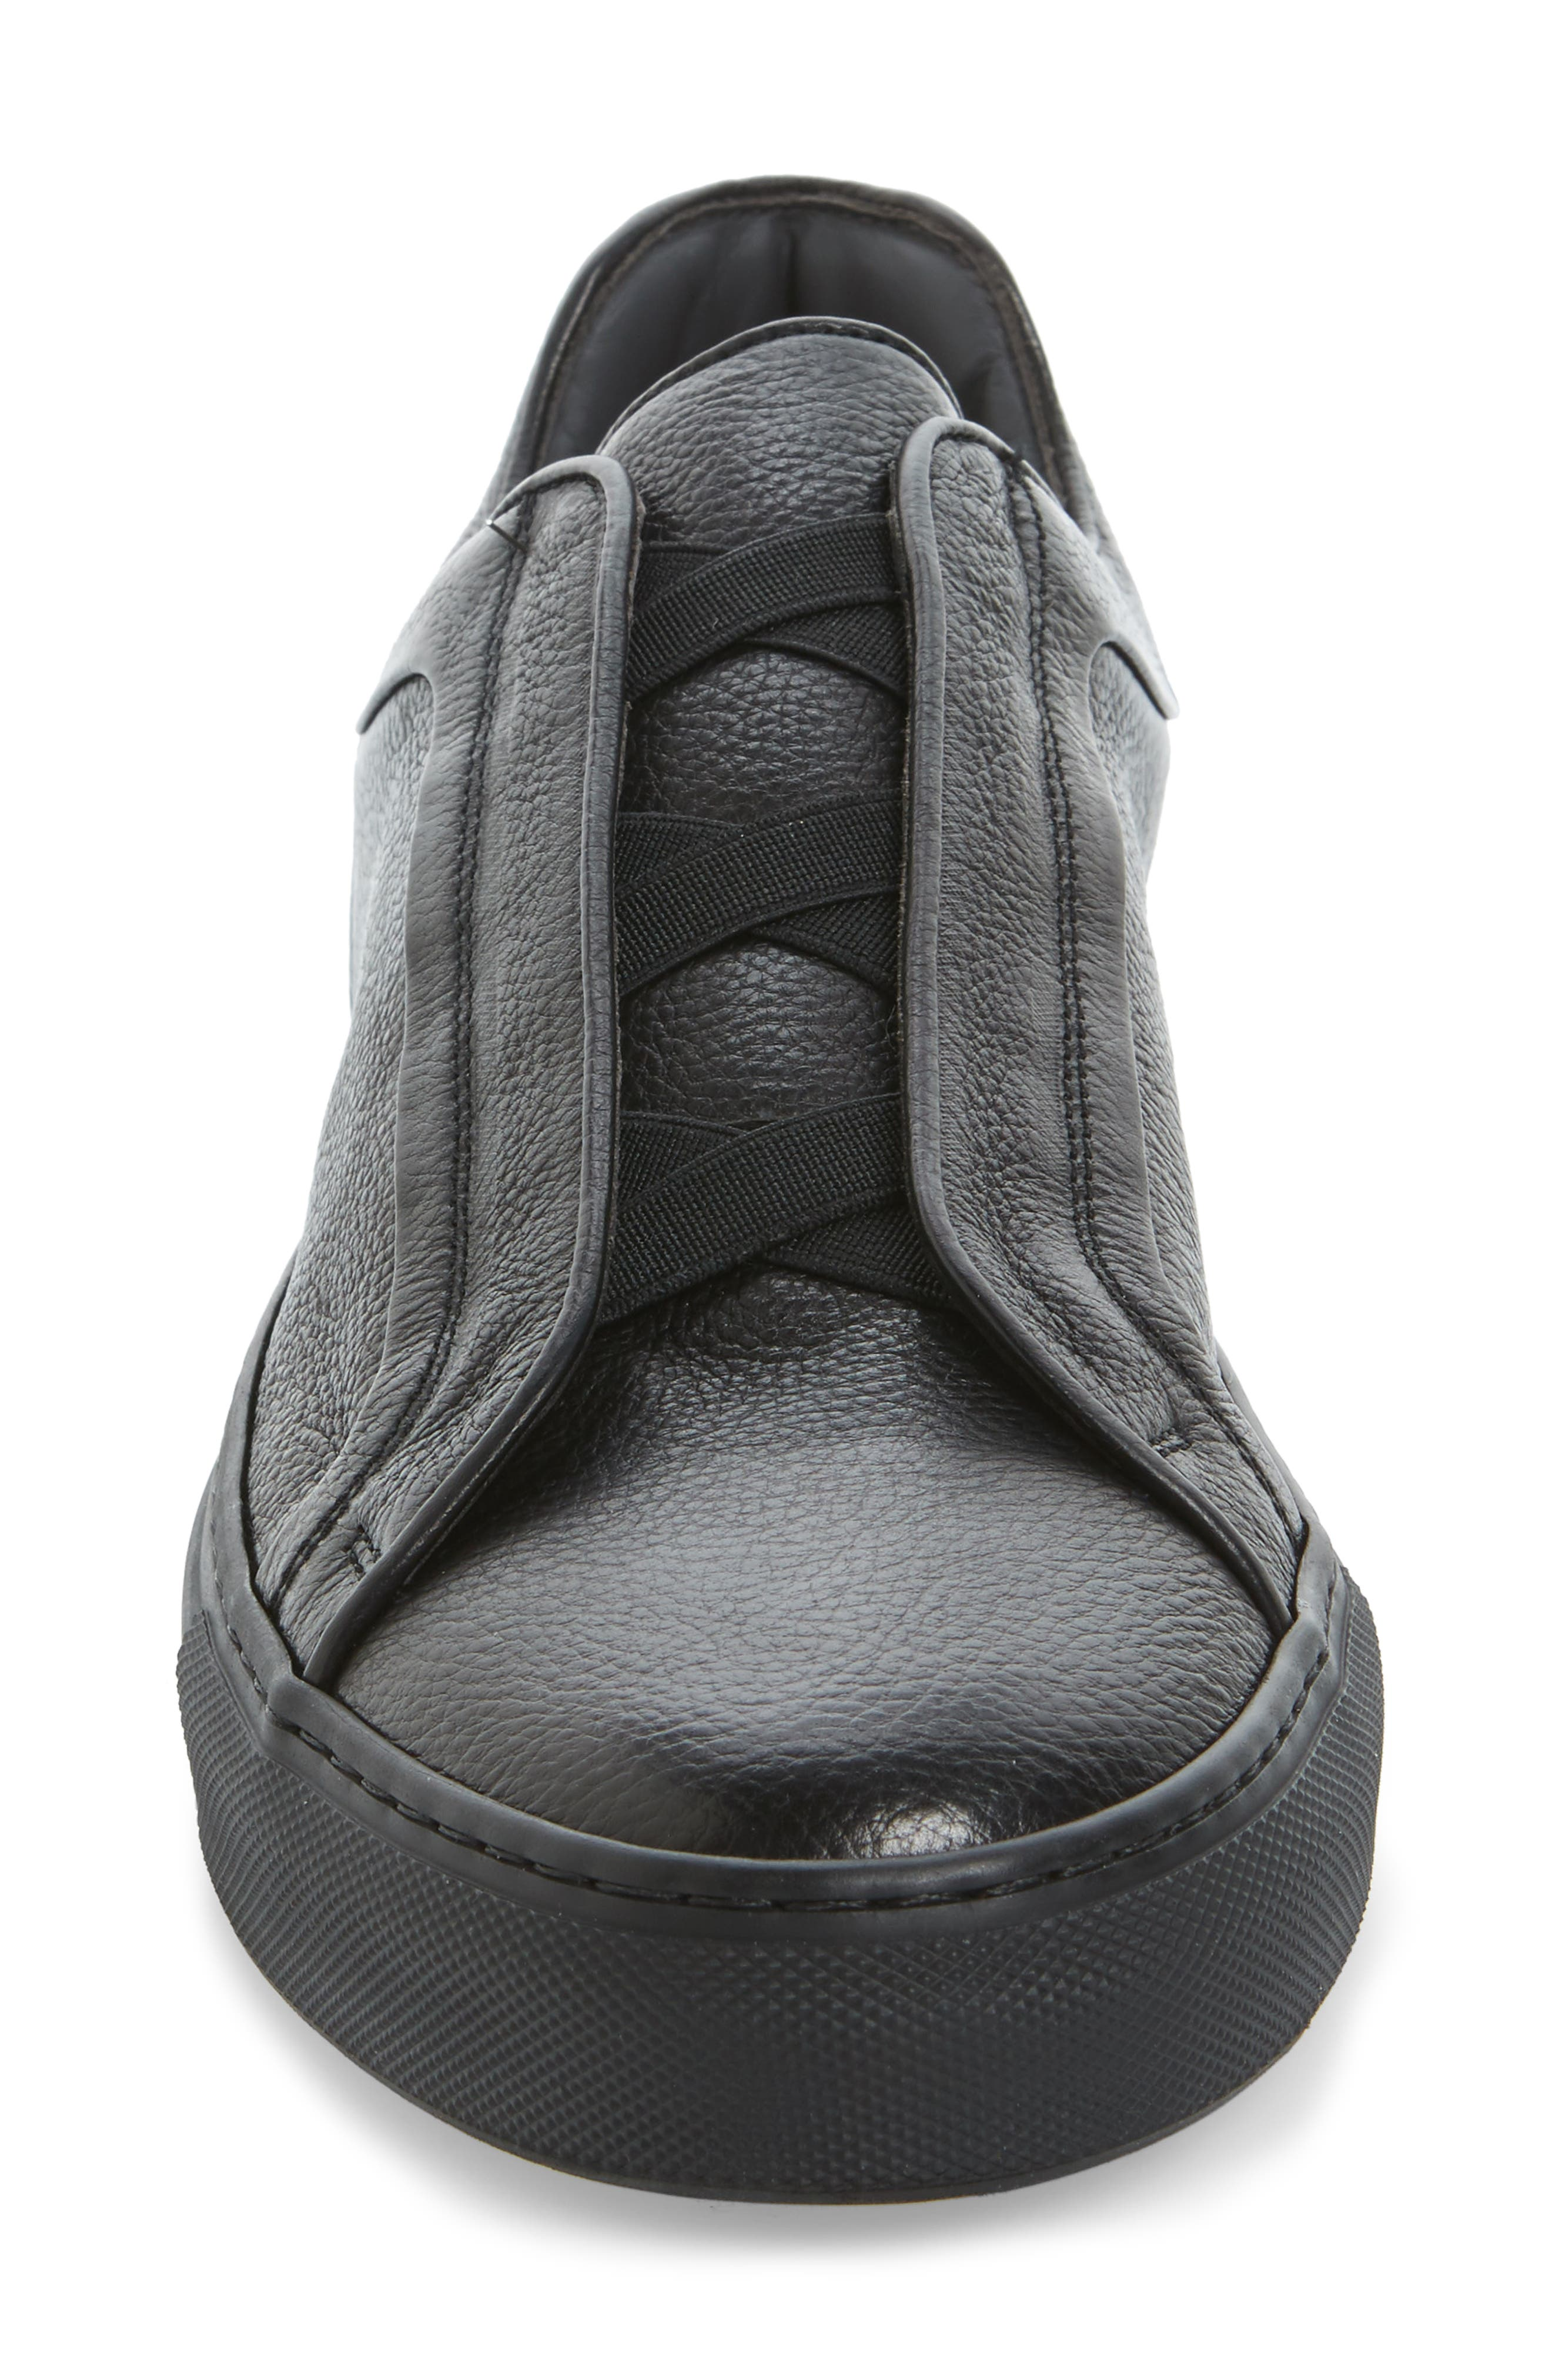 Cliff Sneaker,                             Alternate thumbnail 4, color,                             Black Leather